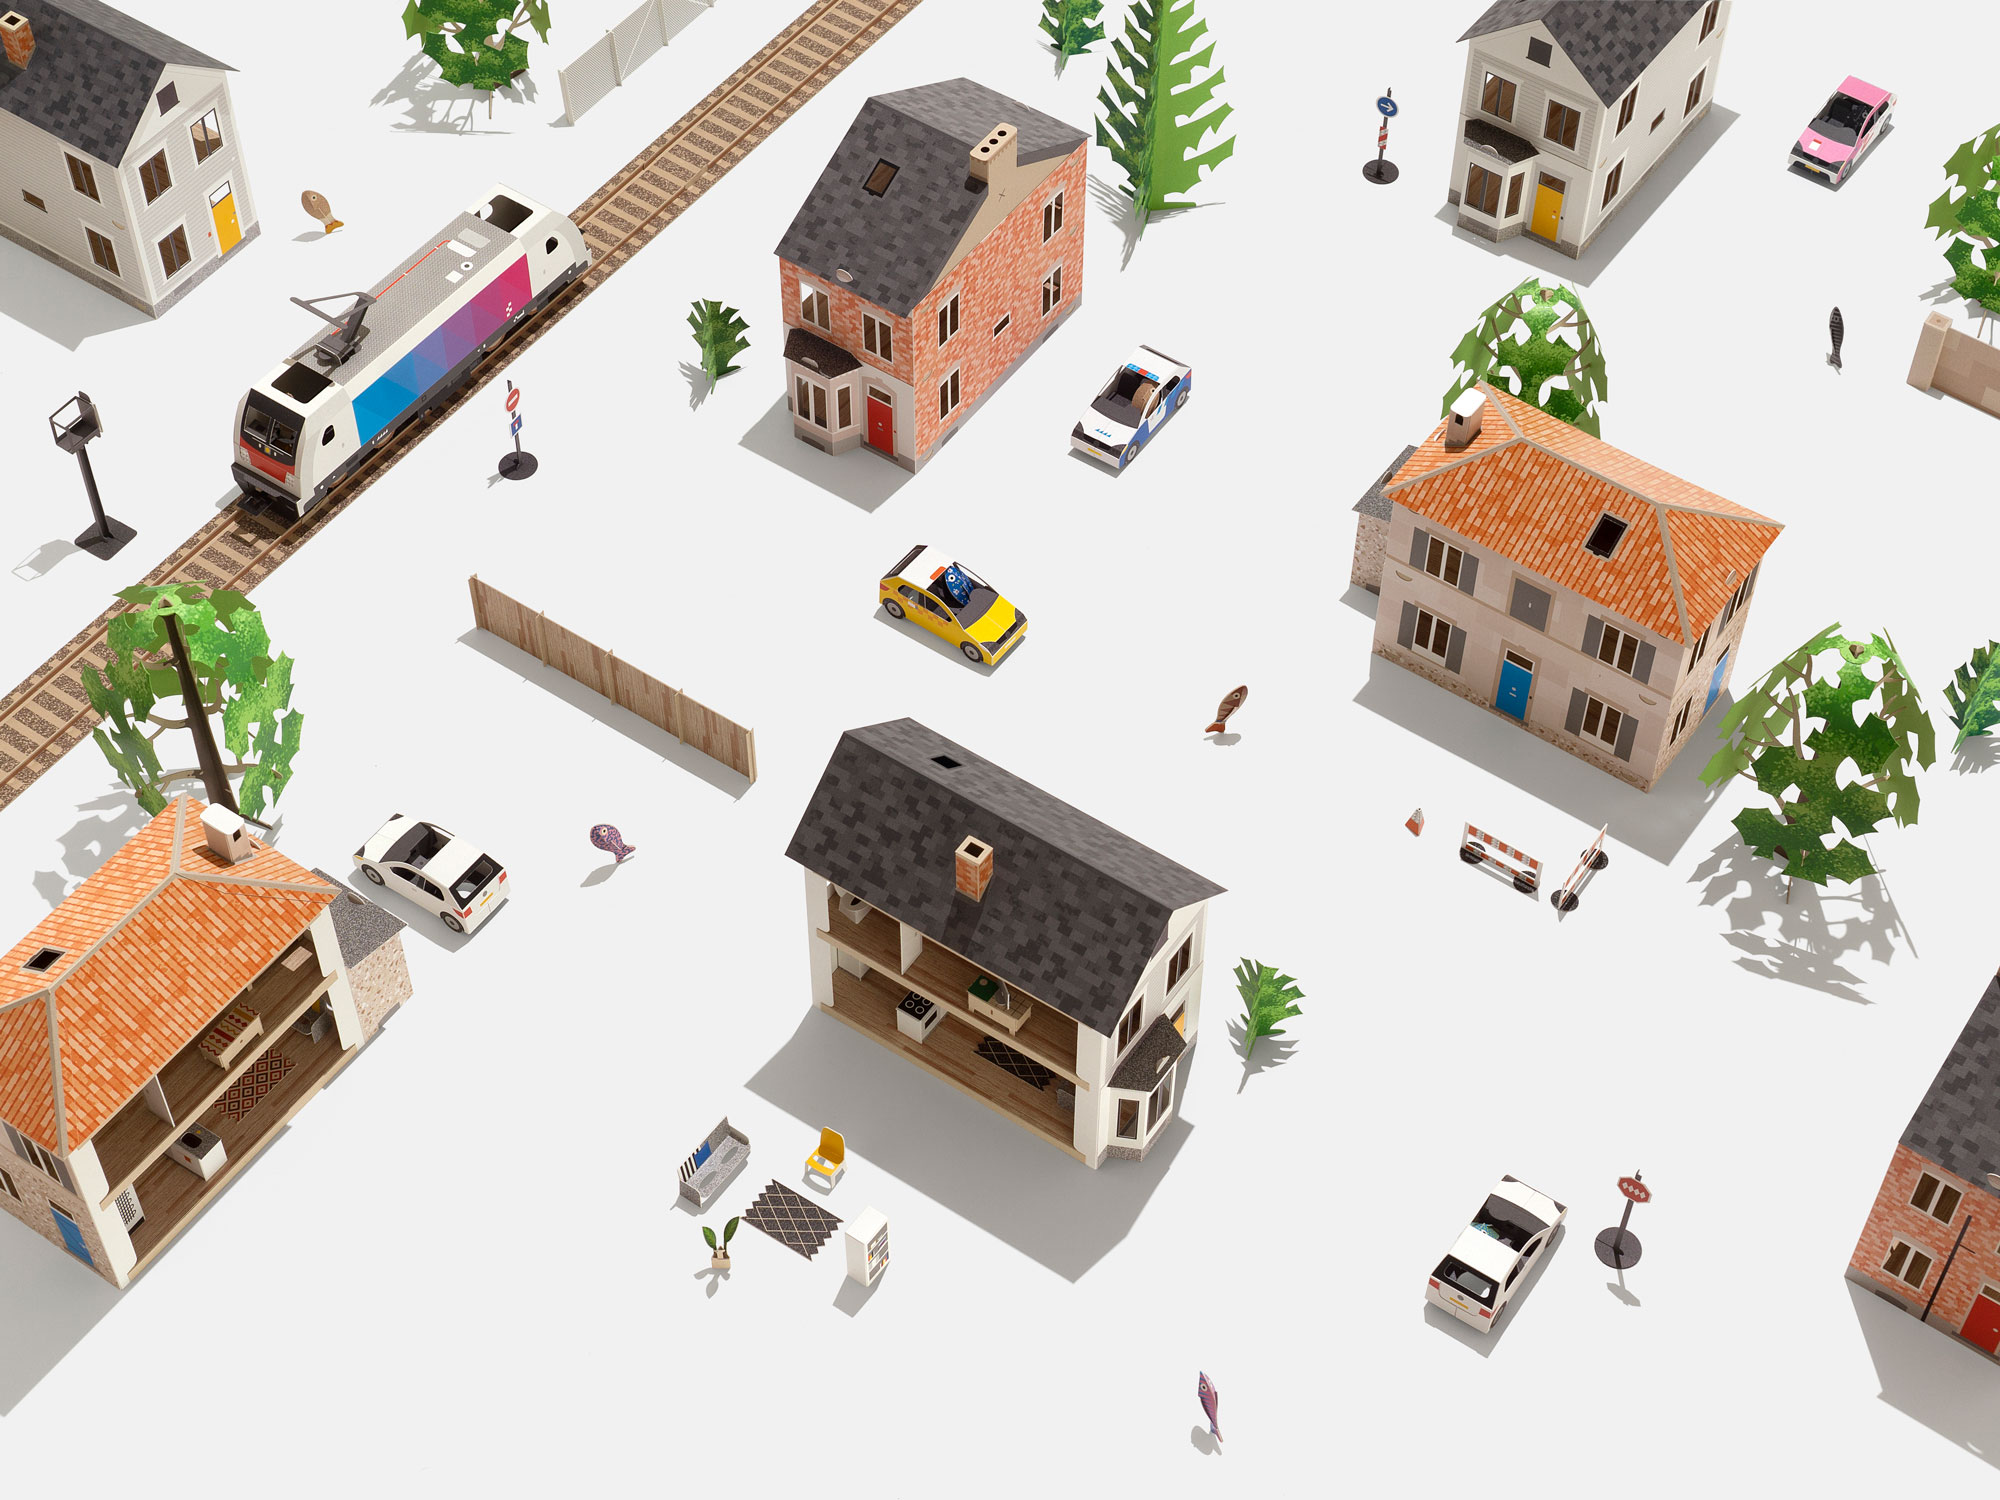 Build your own miniature city with these adorable paper kits